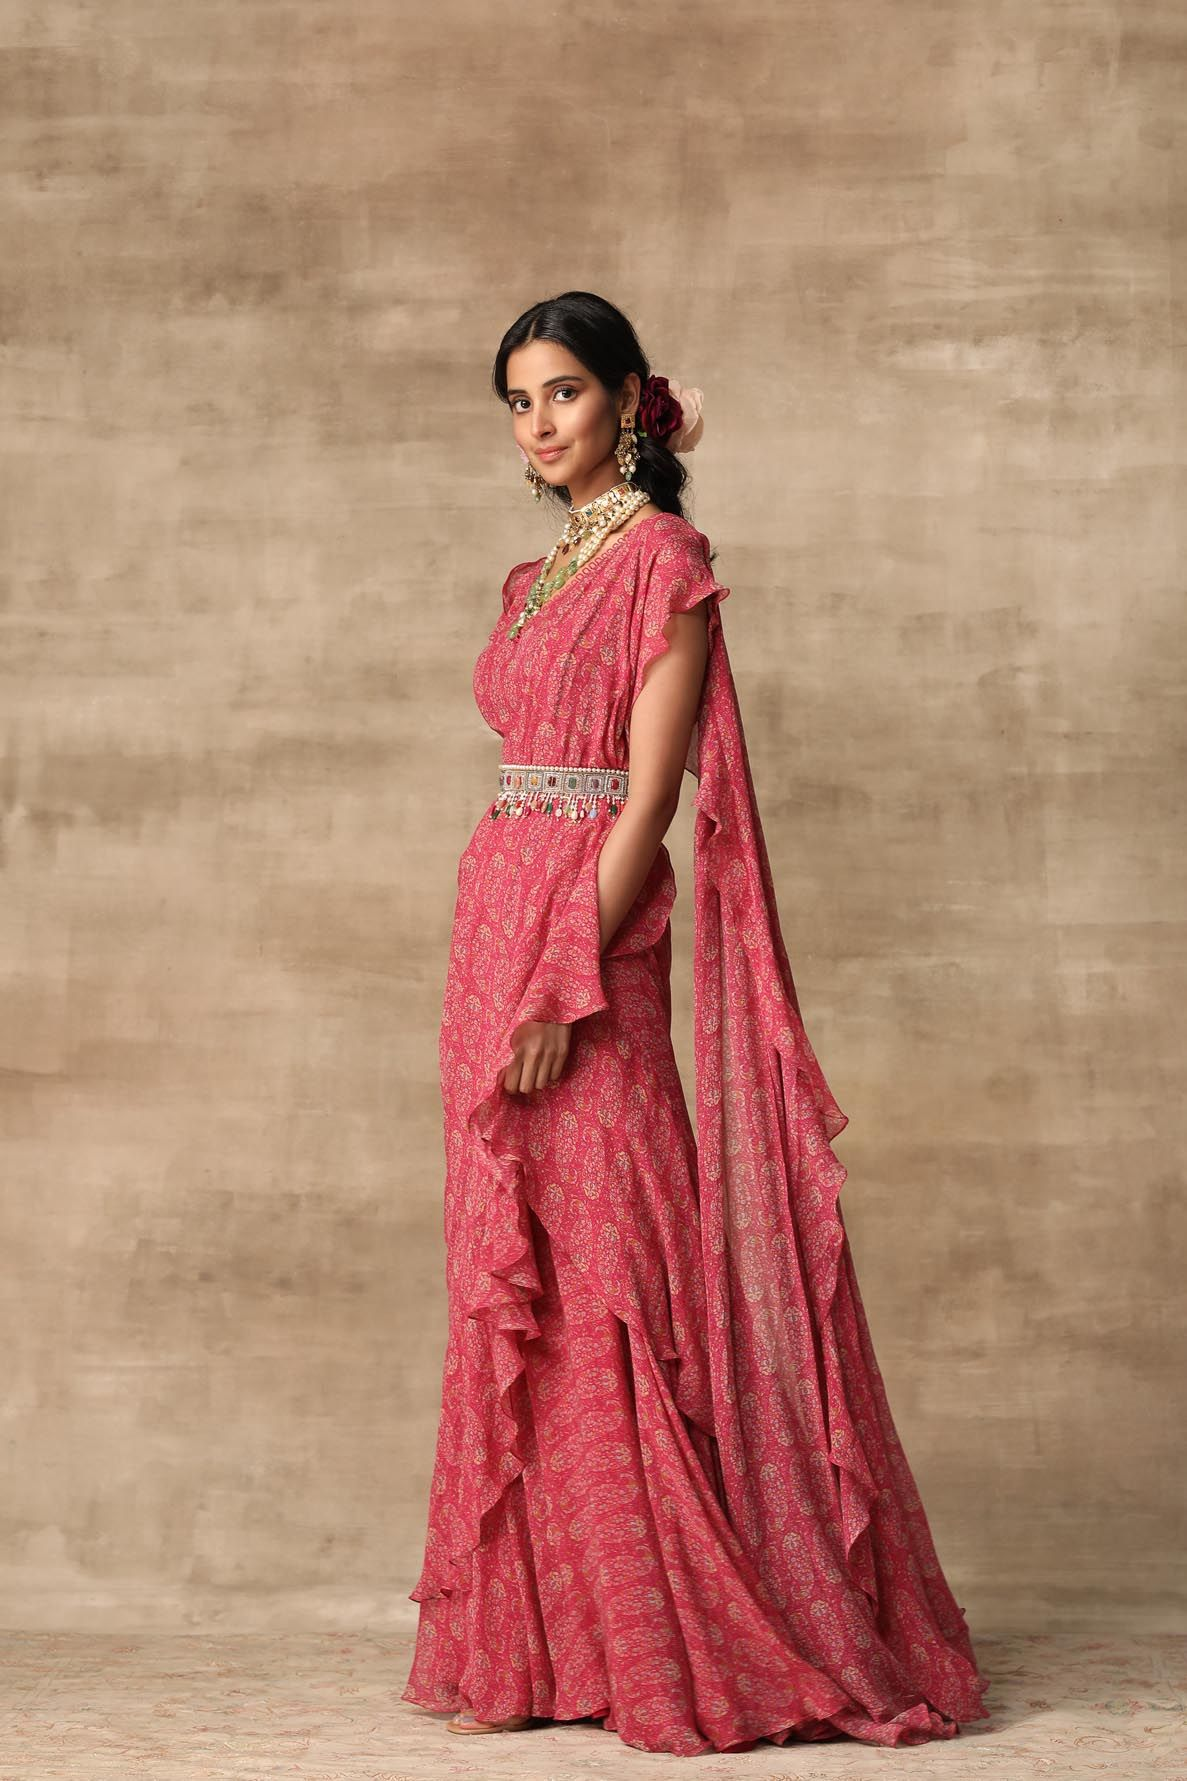 Berry Pink Paisley Printed Chiffon Saree Gown And Ruffle Drape Paired With Multicolour Jewel Belt By Ridhi Mehra Available At Ogaan Online Shop